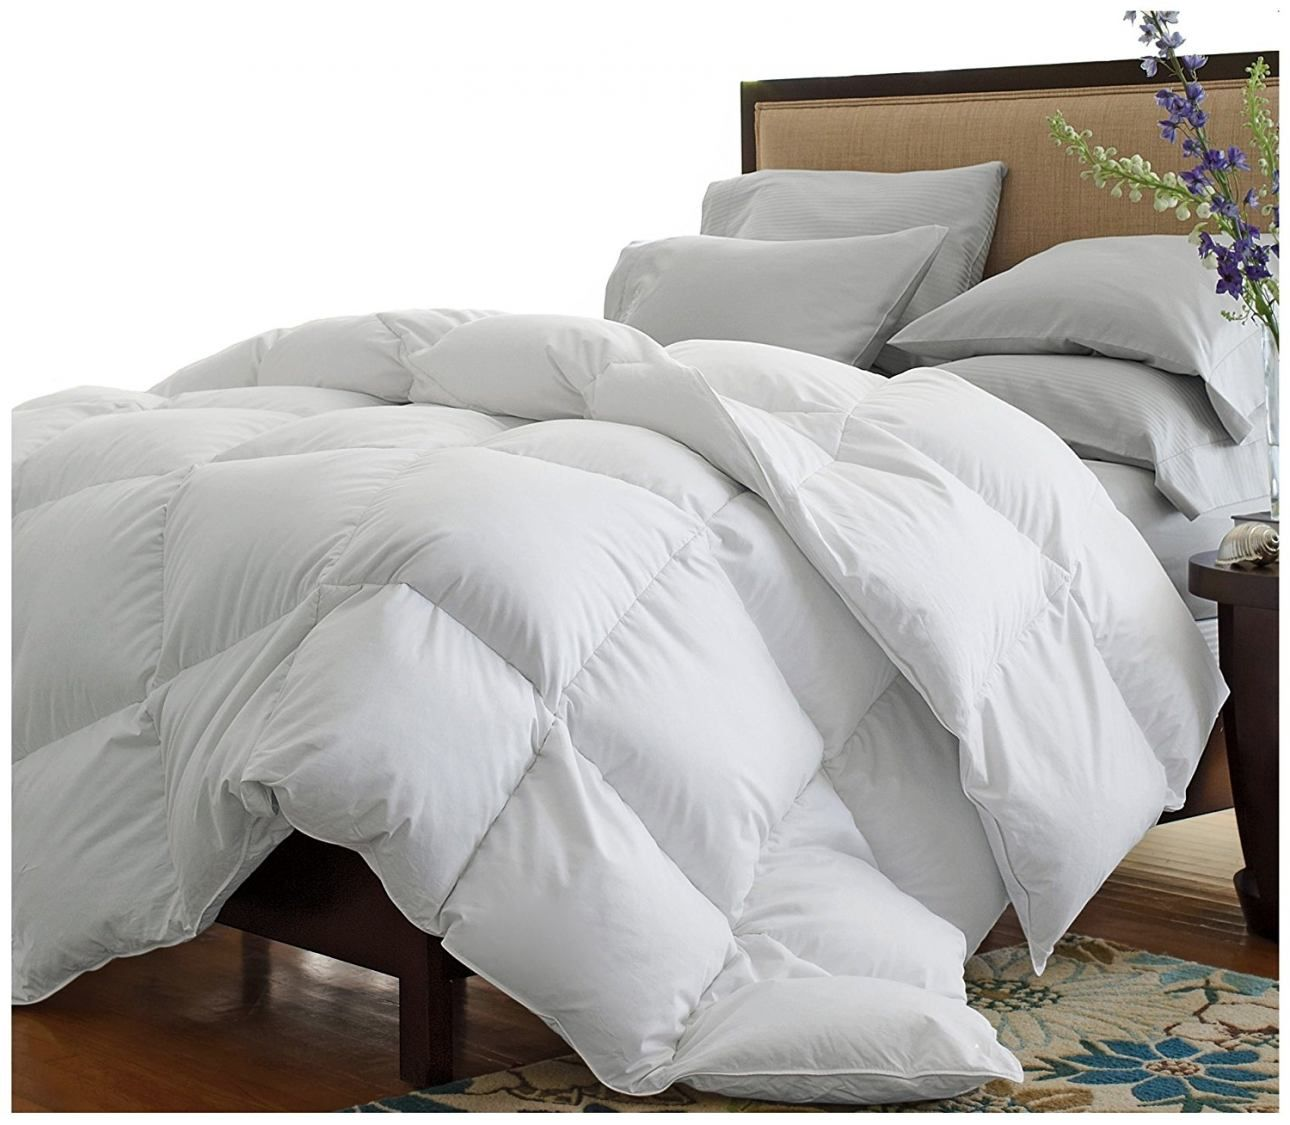 Tröster Big Puffy Weiße Bettdecke Wärmsten Down Alternative Tröster Beste Hypoallergene Bettdecke Dunkelgrau Tröster Comforter Sets Comforters California King